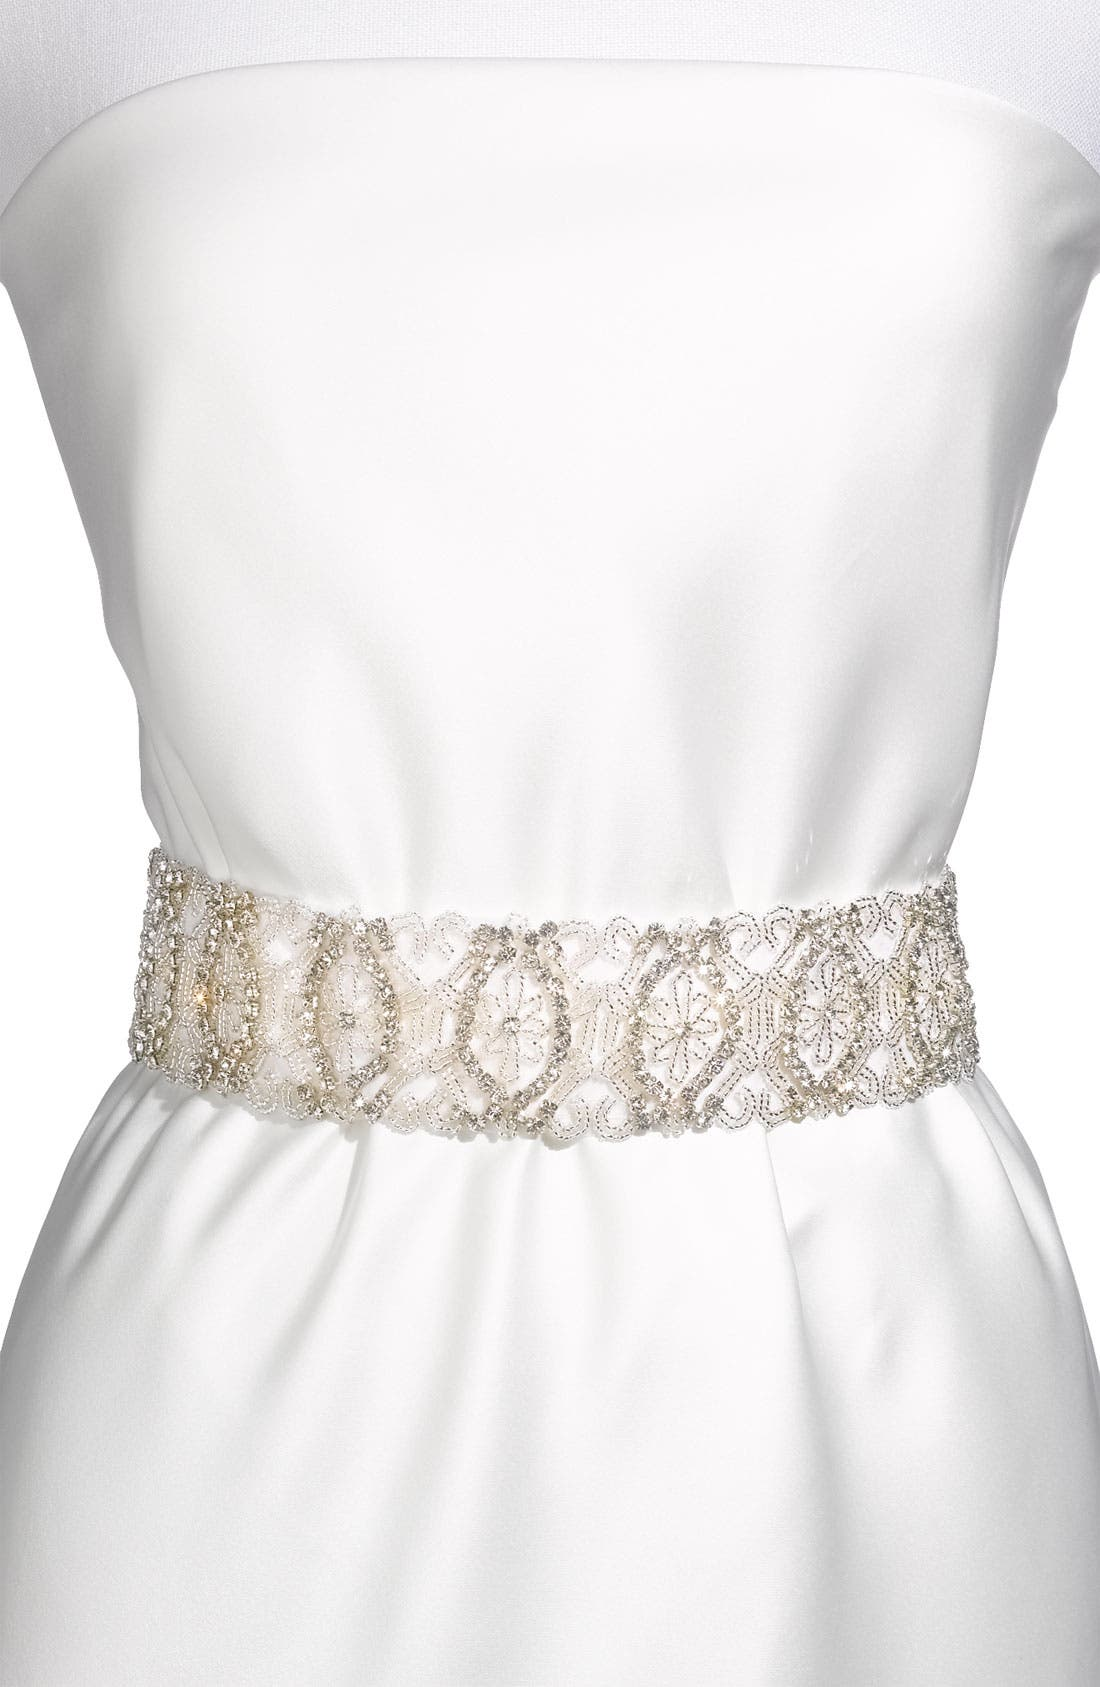 Alternate Image 1 Selected - Cara Beaded Bridal Belt